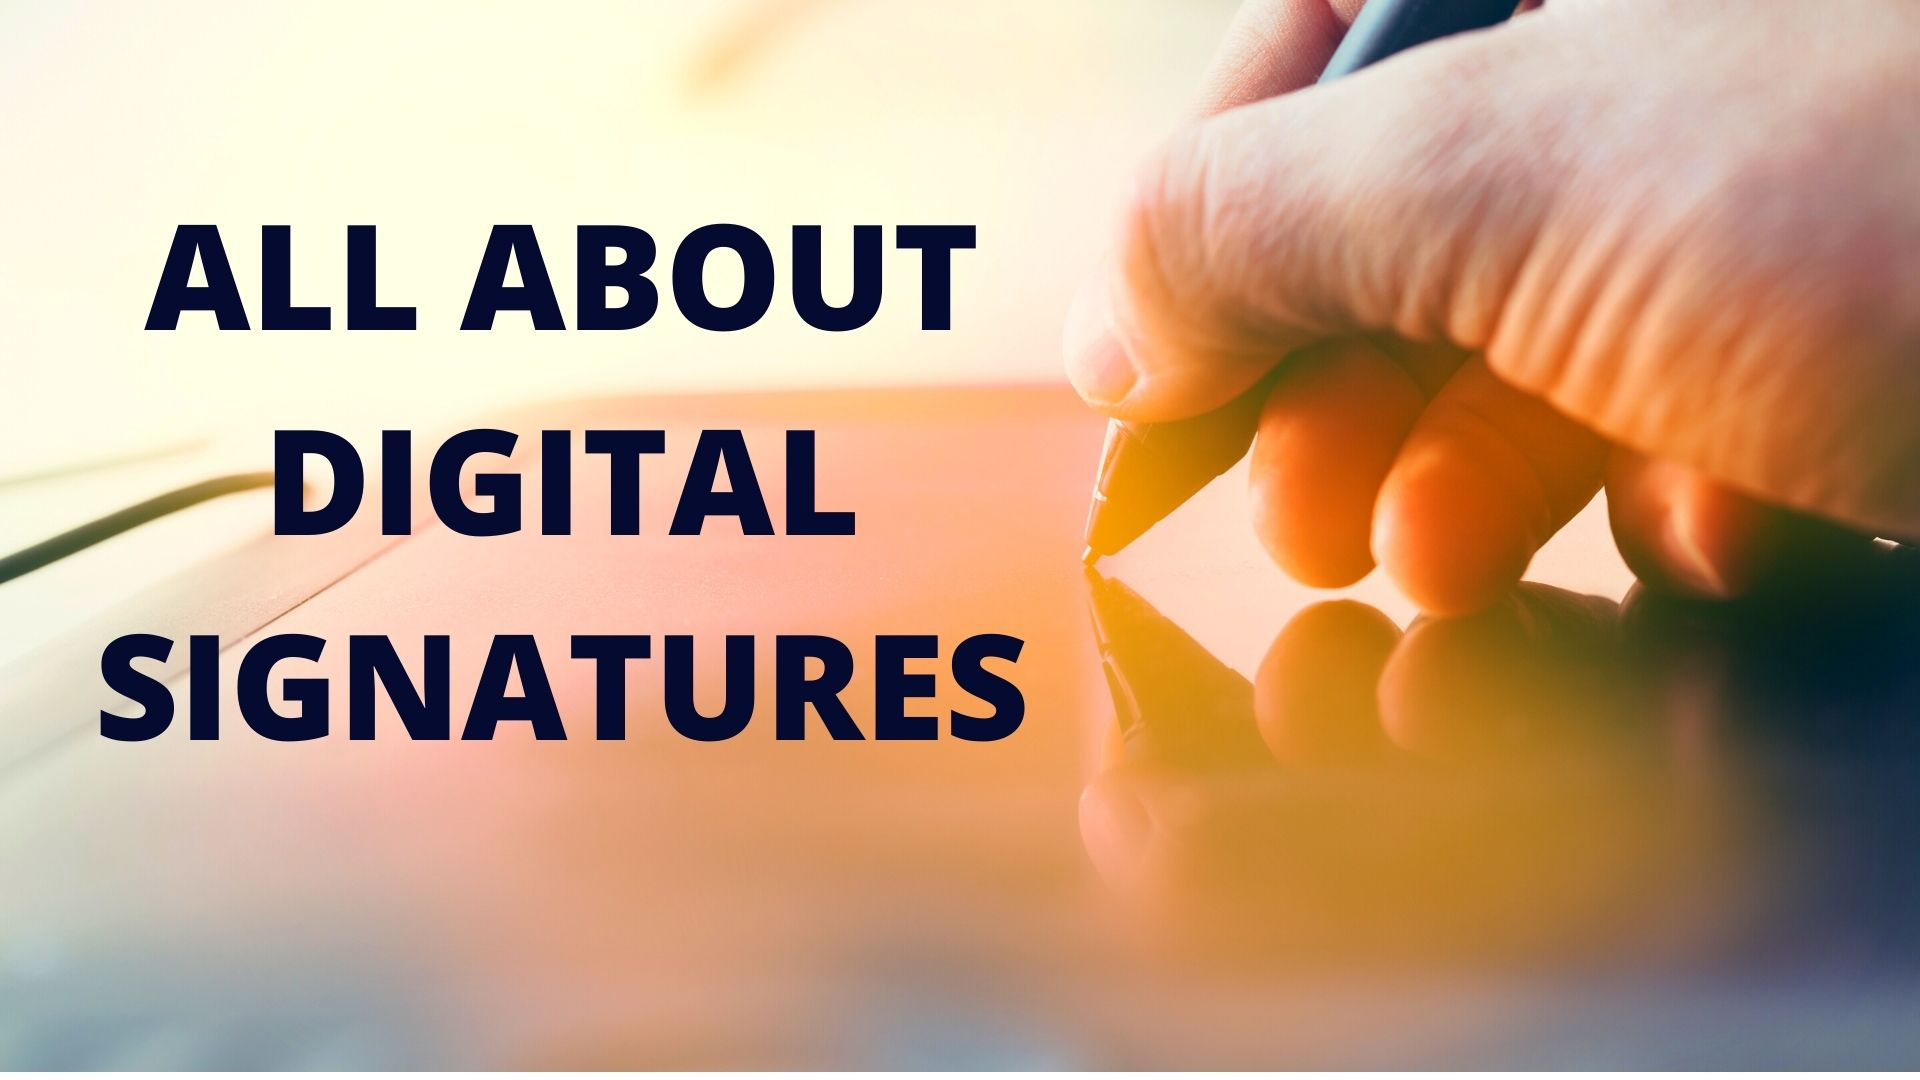 ALL ABOUT DIGITAL SIGNATURES